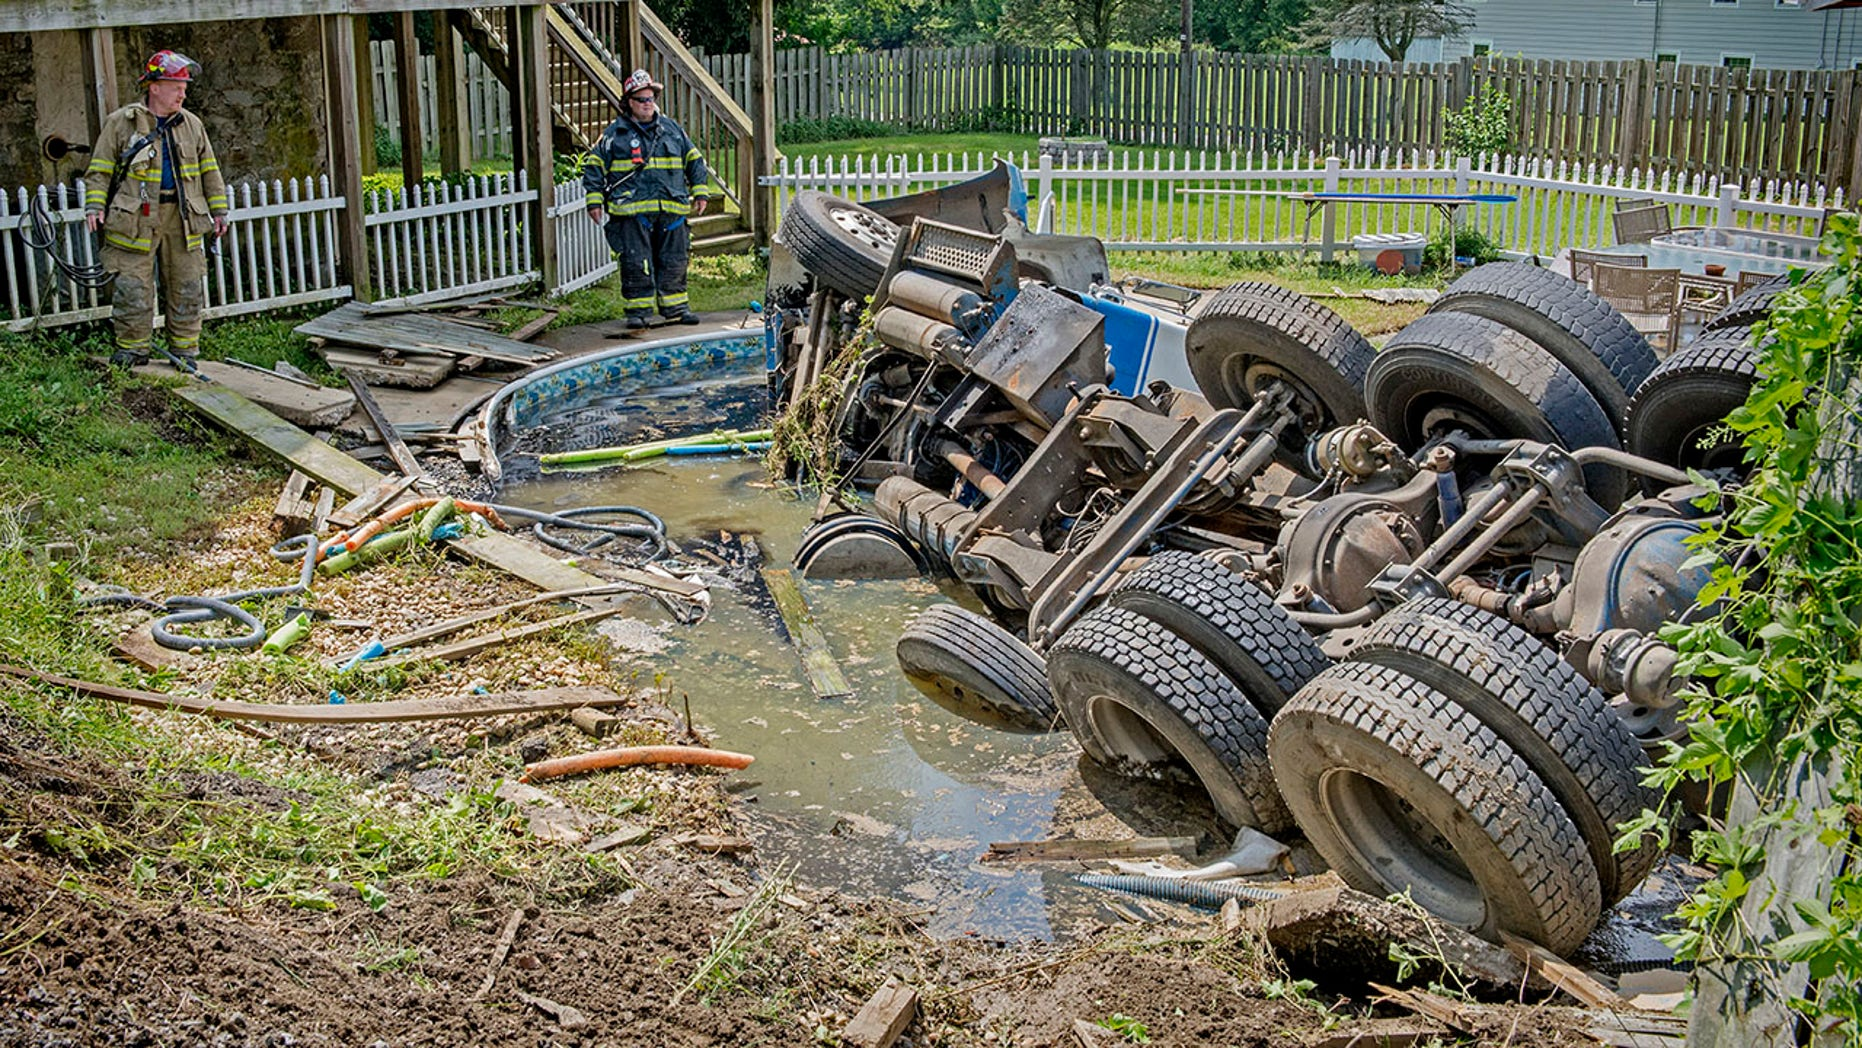 A septic truck overturned and crashed into a swimming pool Thursday, Aug. 9, 2018, on Slackwater Road at Stehman Road in Conestoga Township, Lancaster County, Pa.  (Blaine Shahan/LancasterOnline via AP)